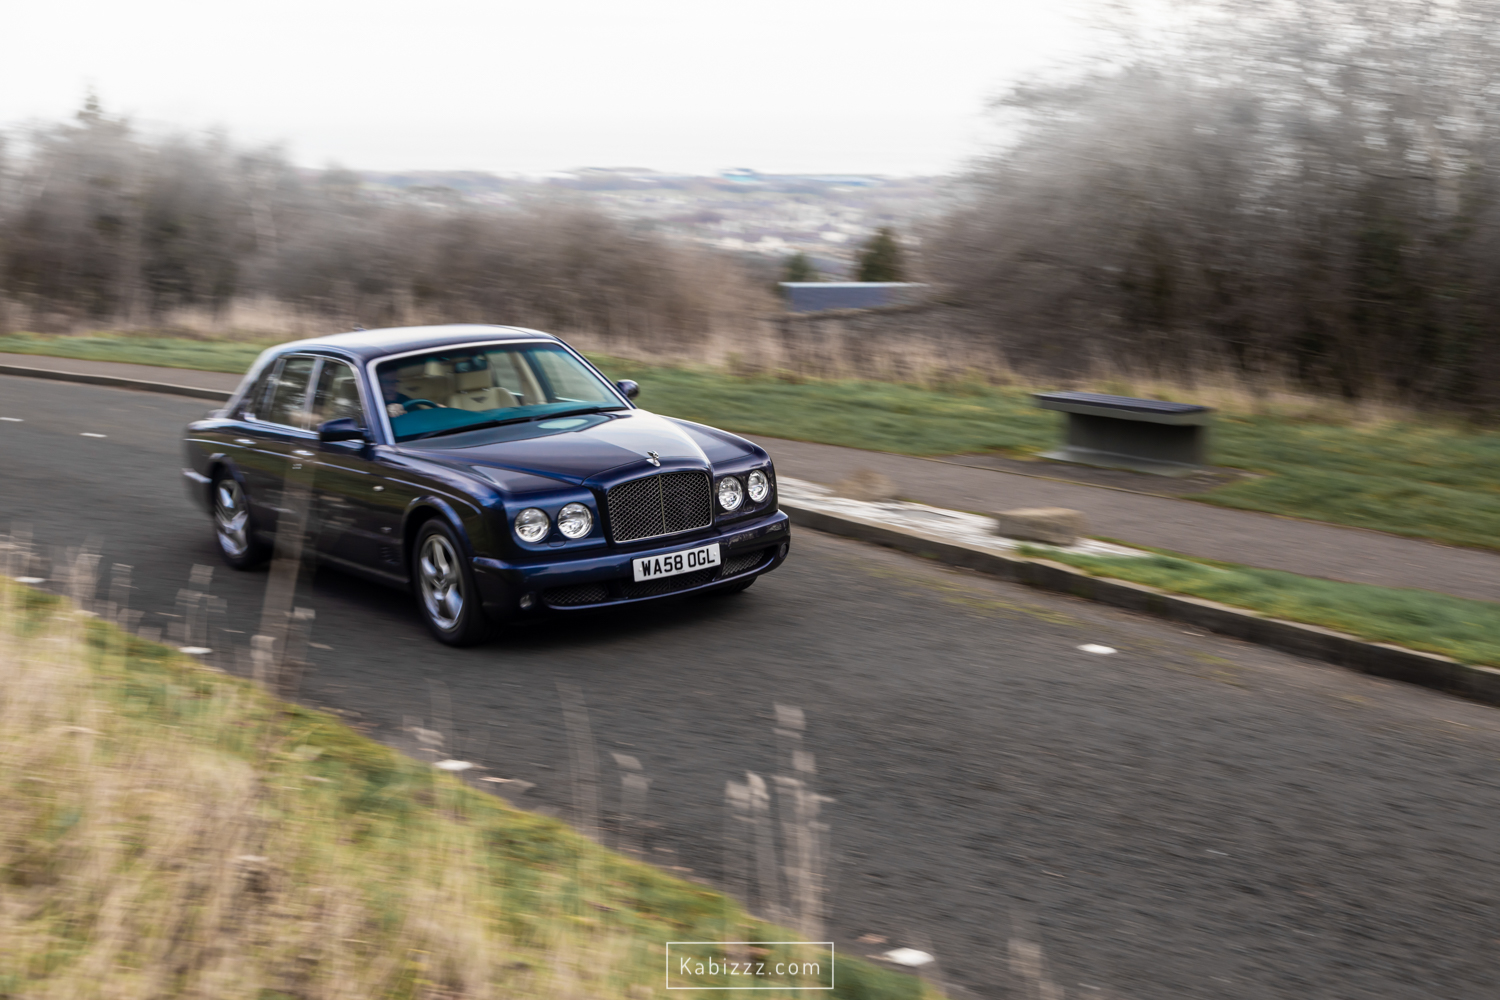 2008_bentley_arnage_blue_automotive_photography_kabizzz.jpg